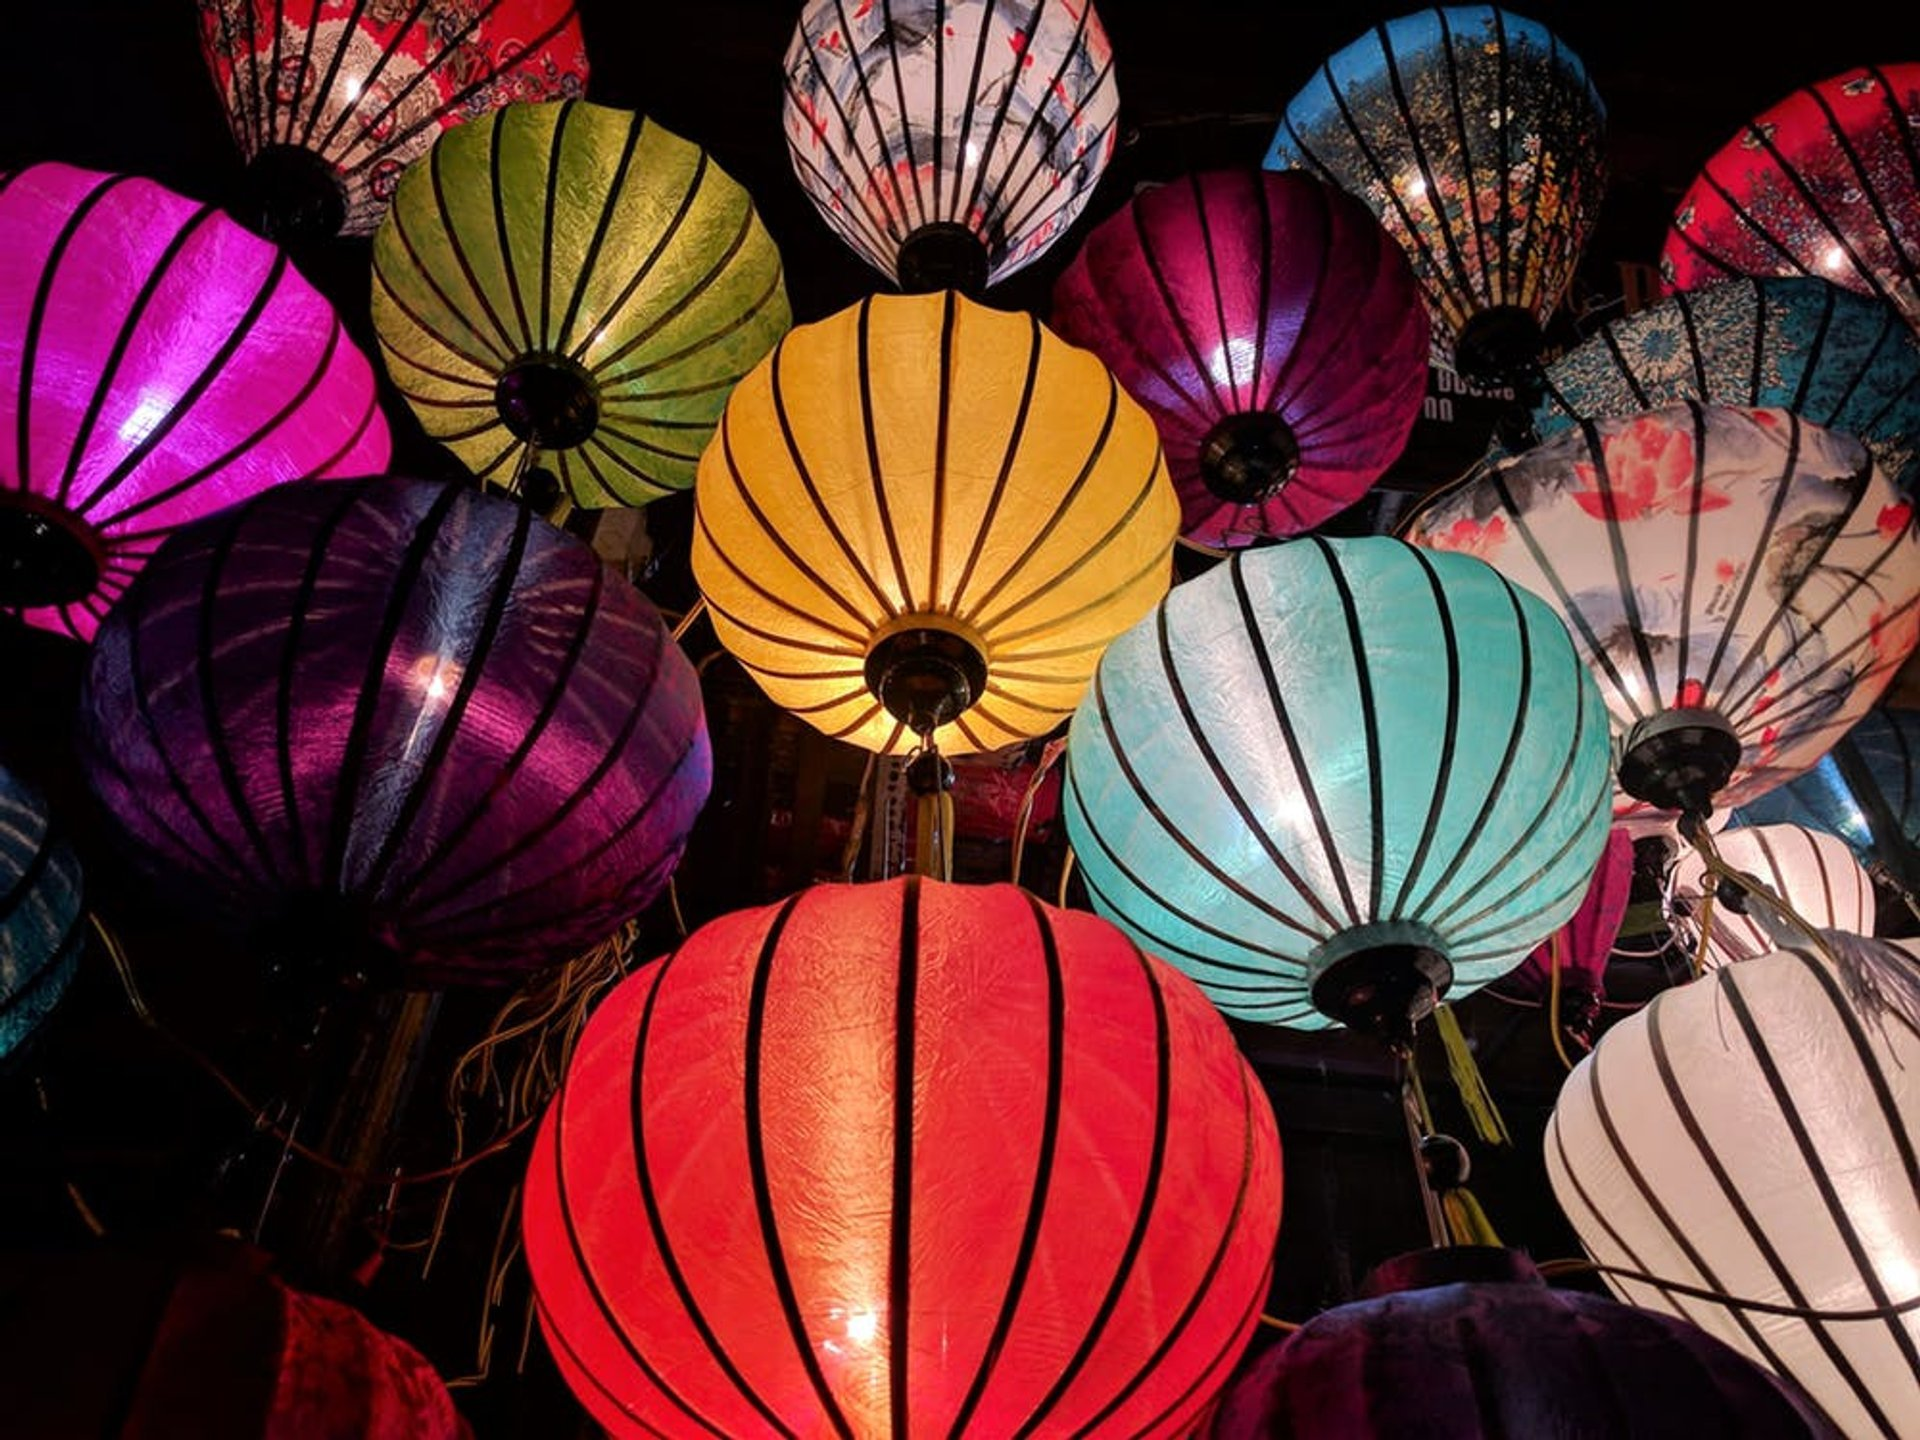 Best time for Lantern Festival in China 2020